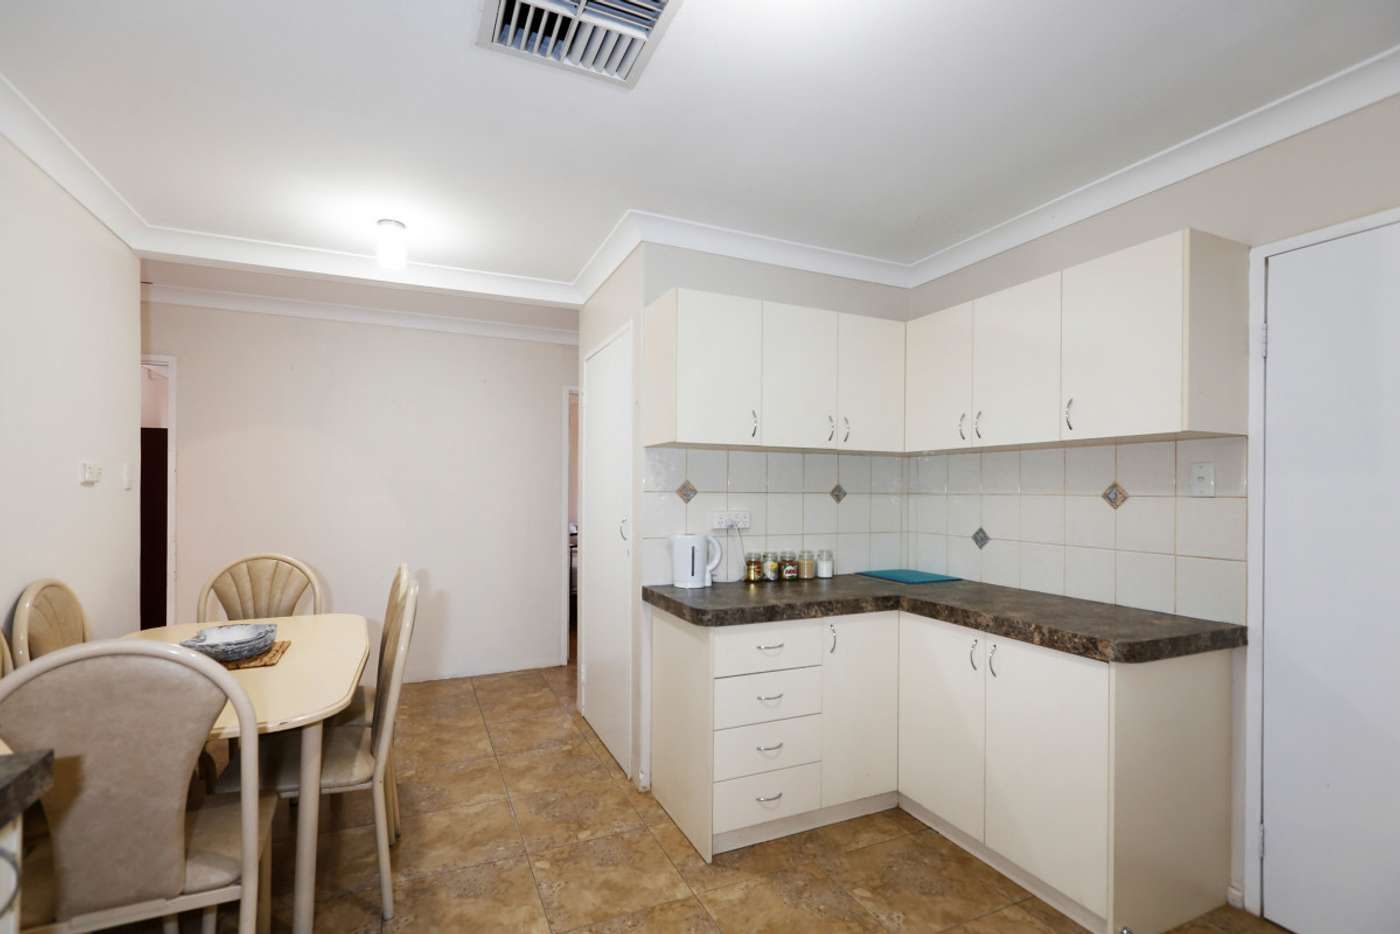 Sixth view of Homely house listing, 4 Wilcannia Way, Armadale WA 6112